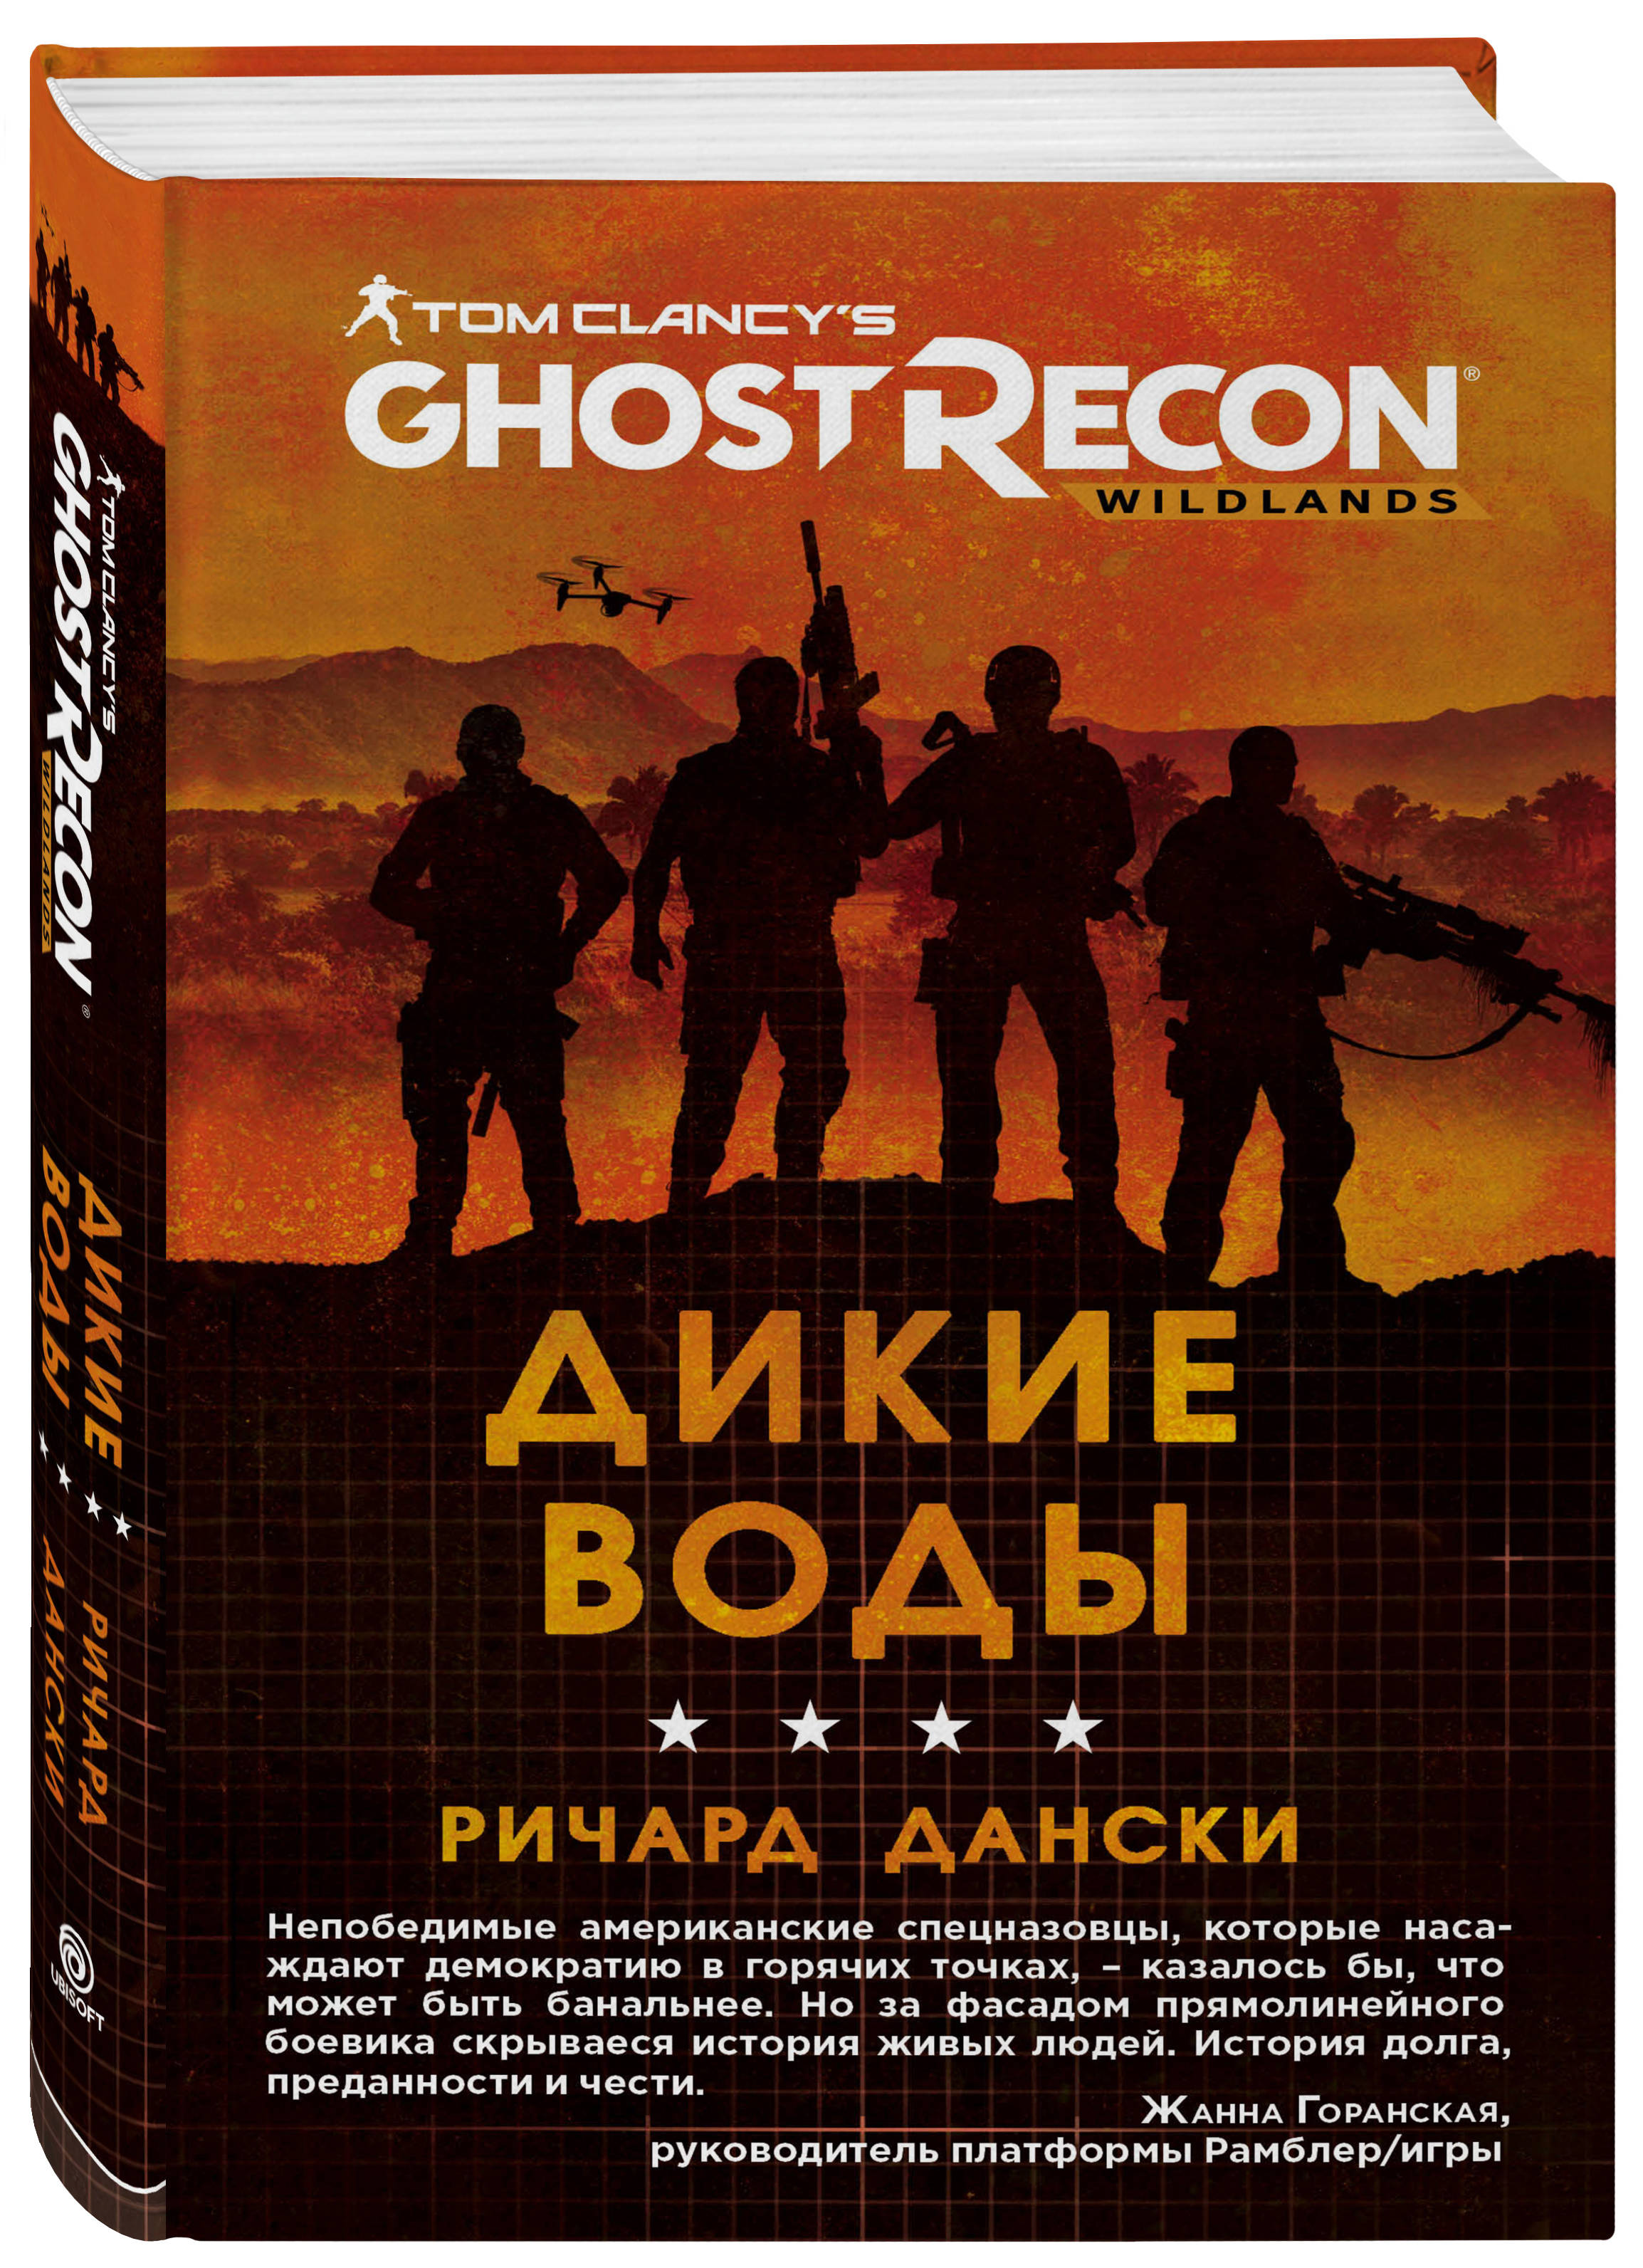 Ghost Recon. Дикие Воды ( Дански Р.  )